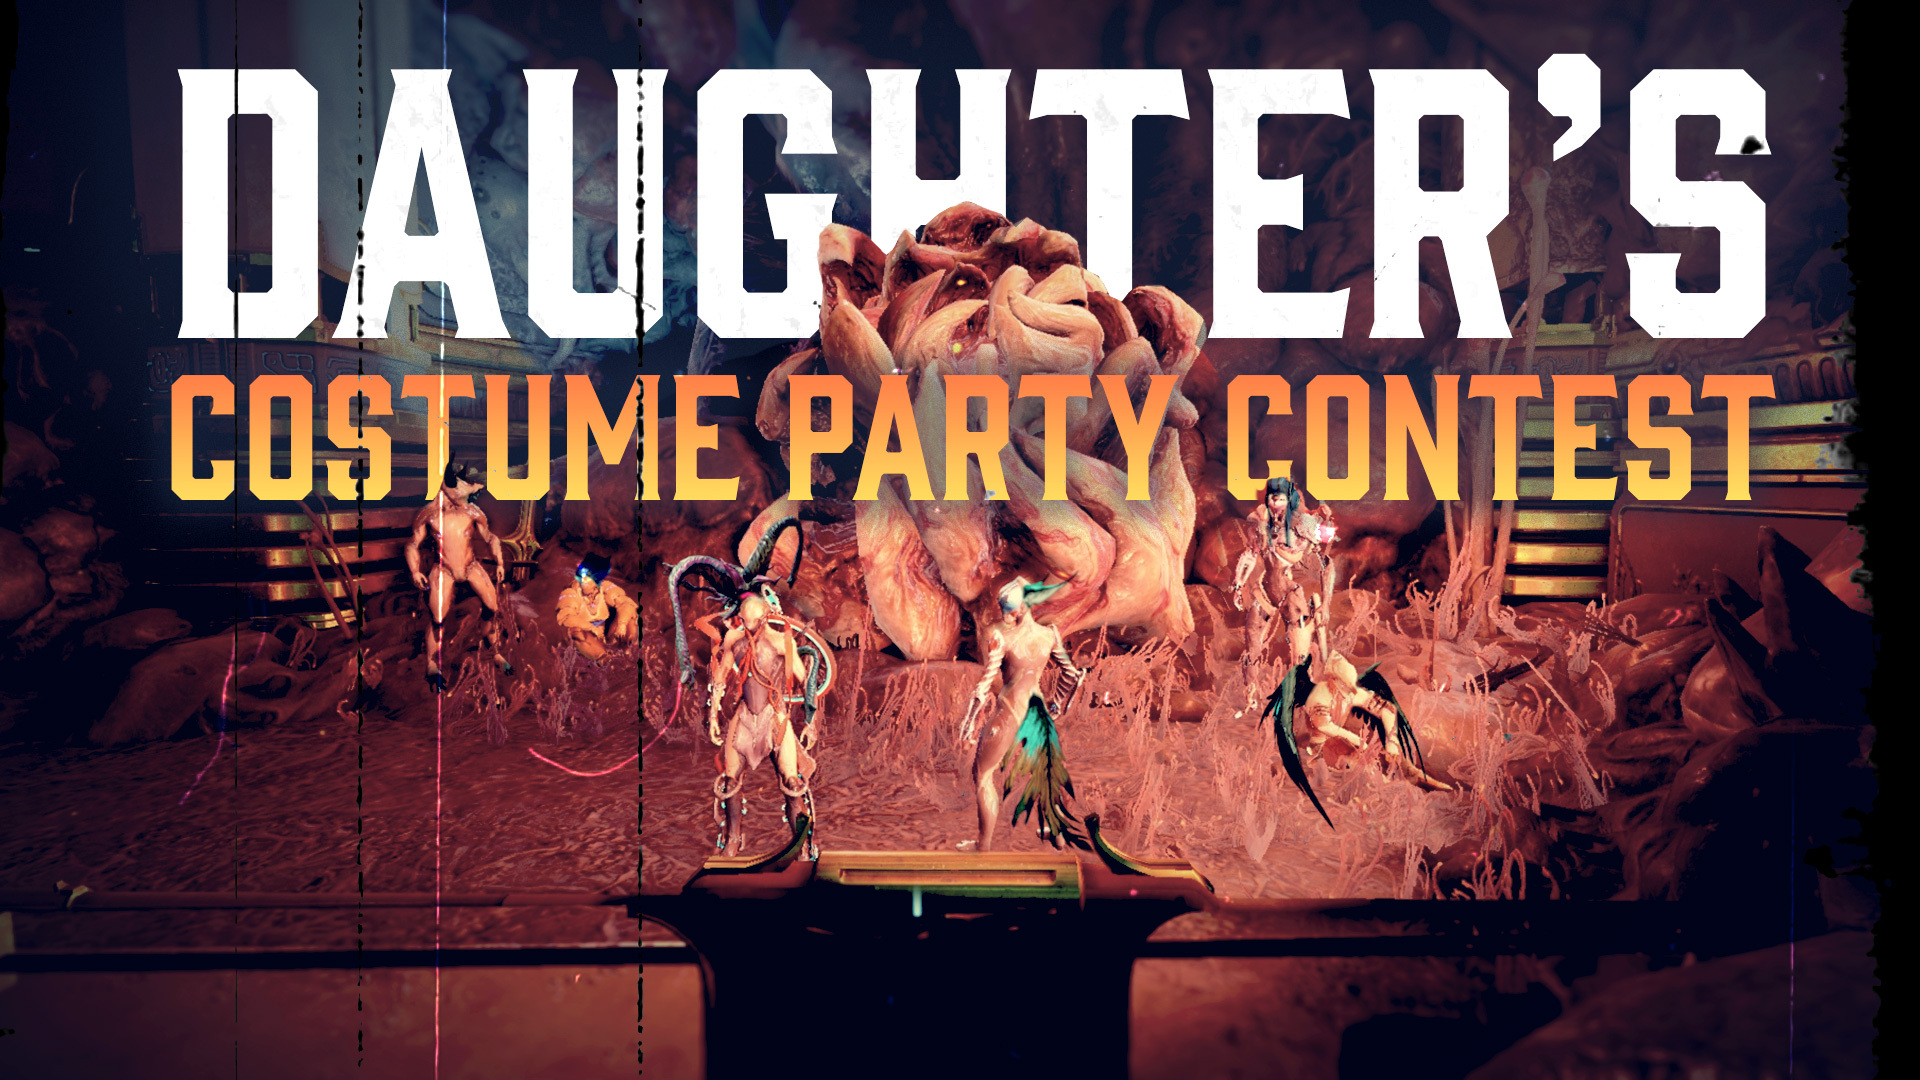 DaughterCostumePartyContest_1080p.jpg